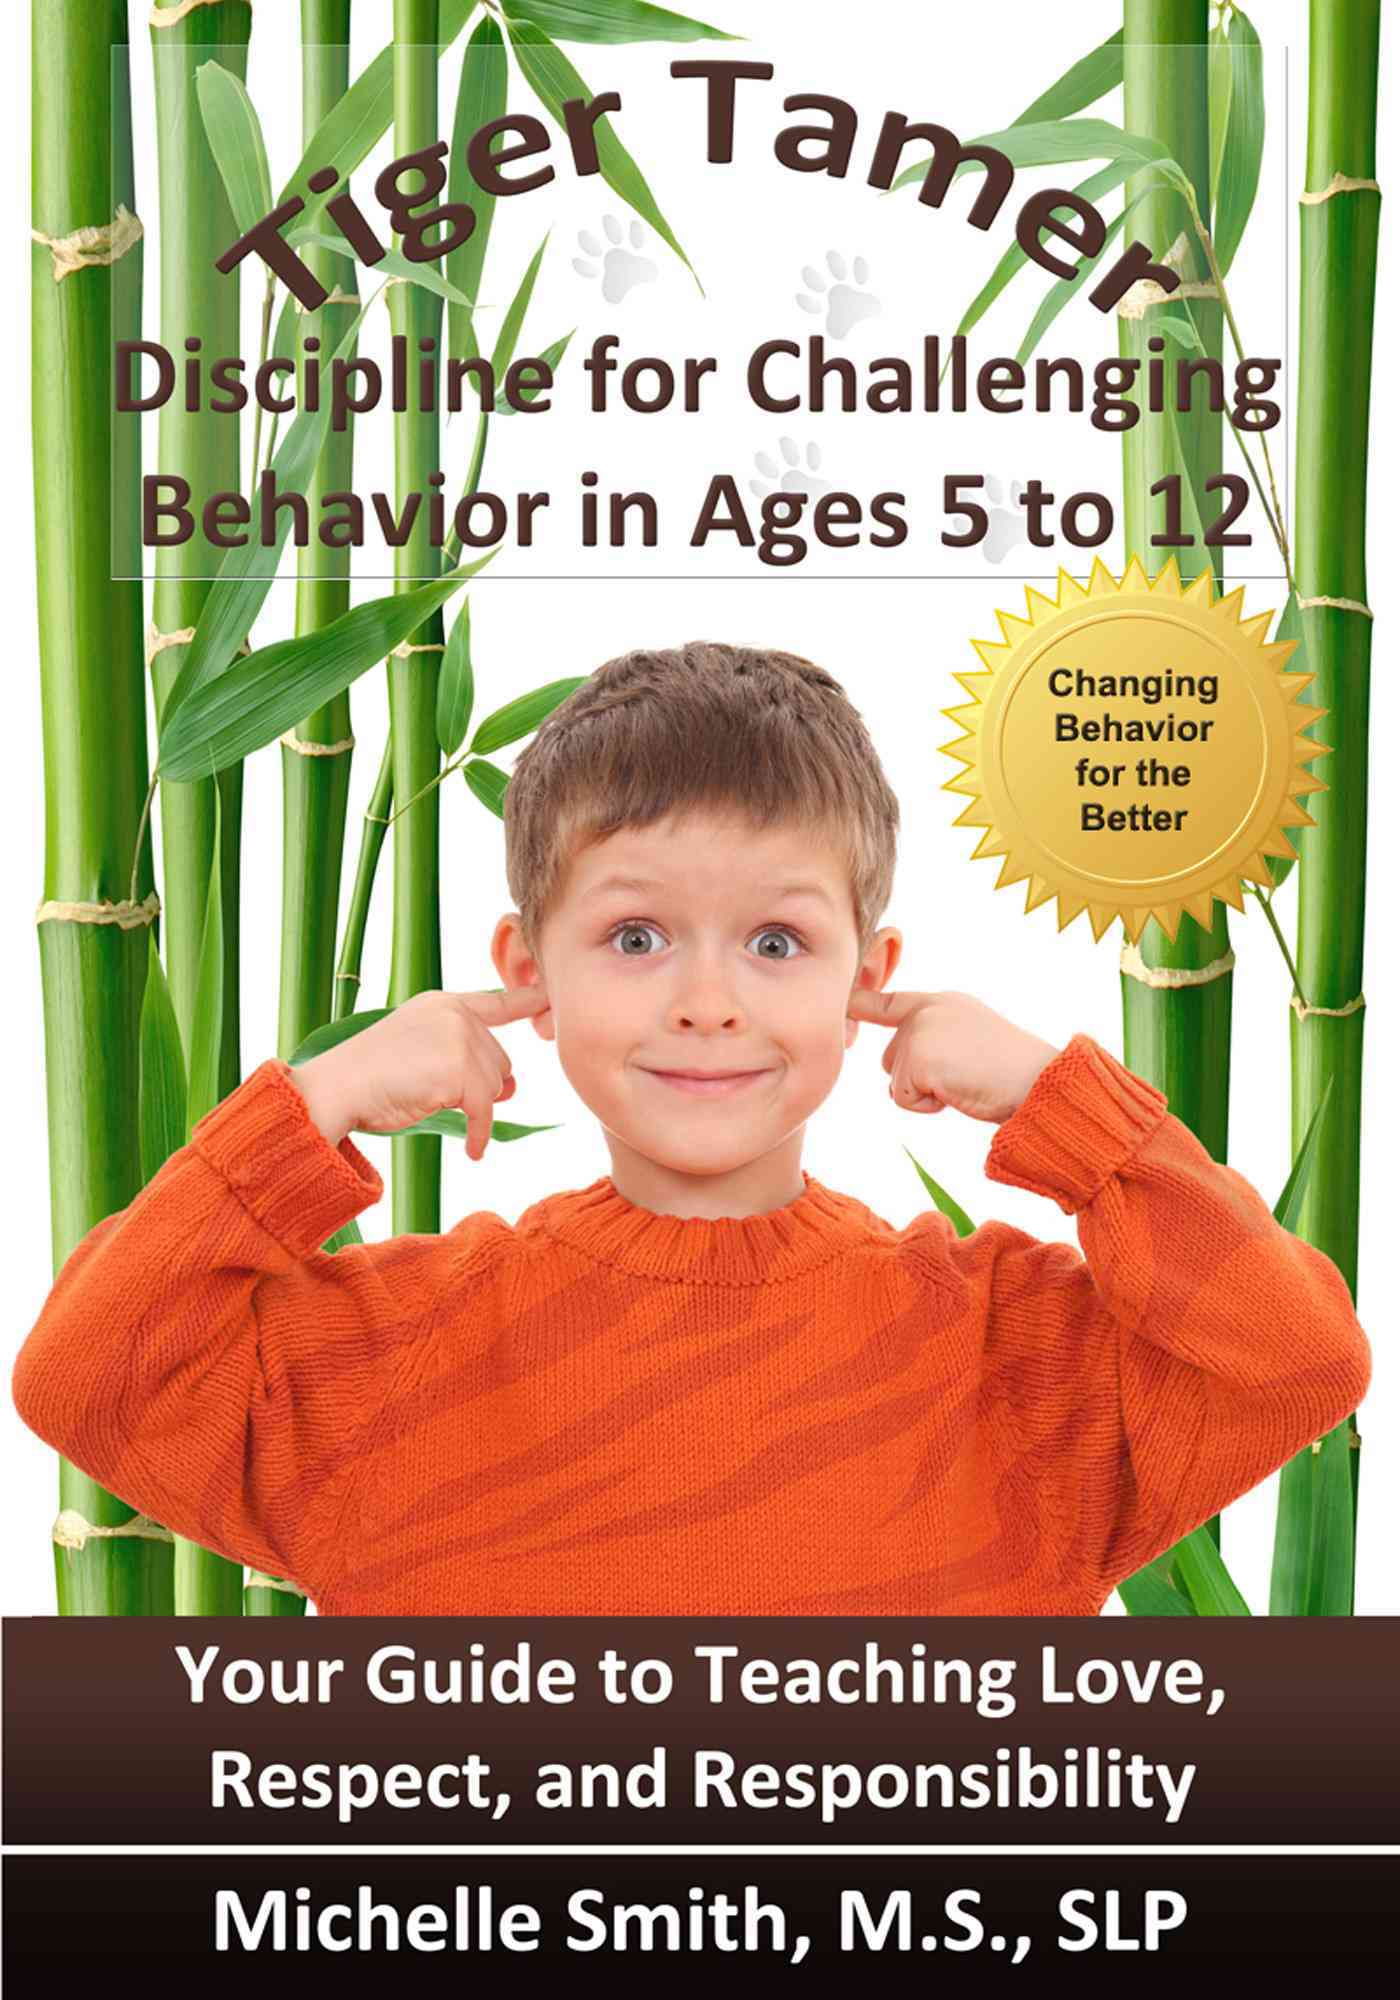 CreateSpace Tiger Tamer: Discipline for Challenging Behavior in 5-6-7-8-9-10-11-12 Year Olds by Smith MS, Slp Michelle [Paperback] at Sears.com